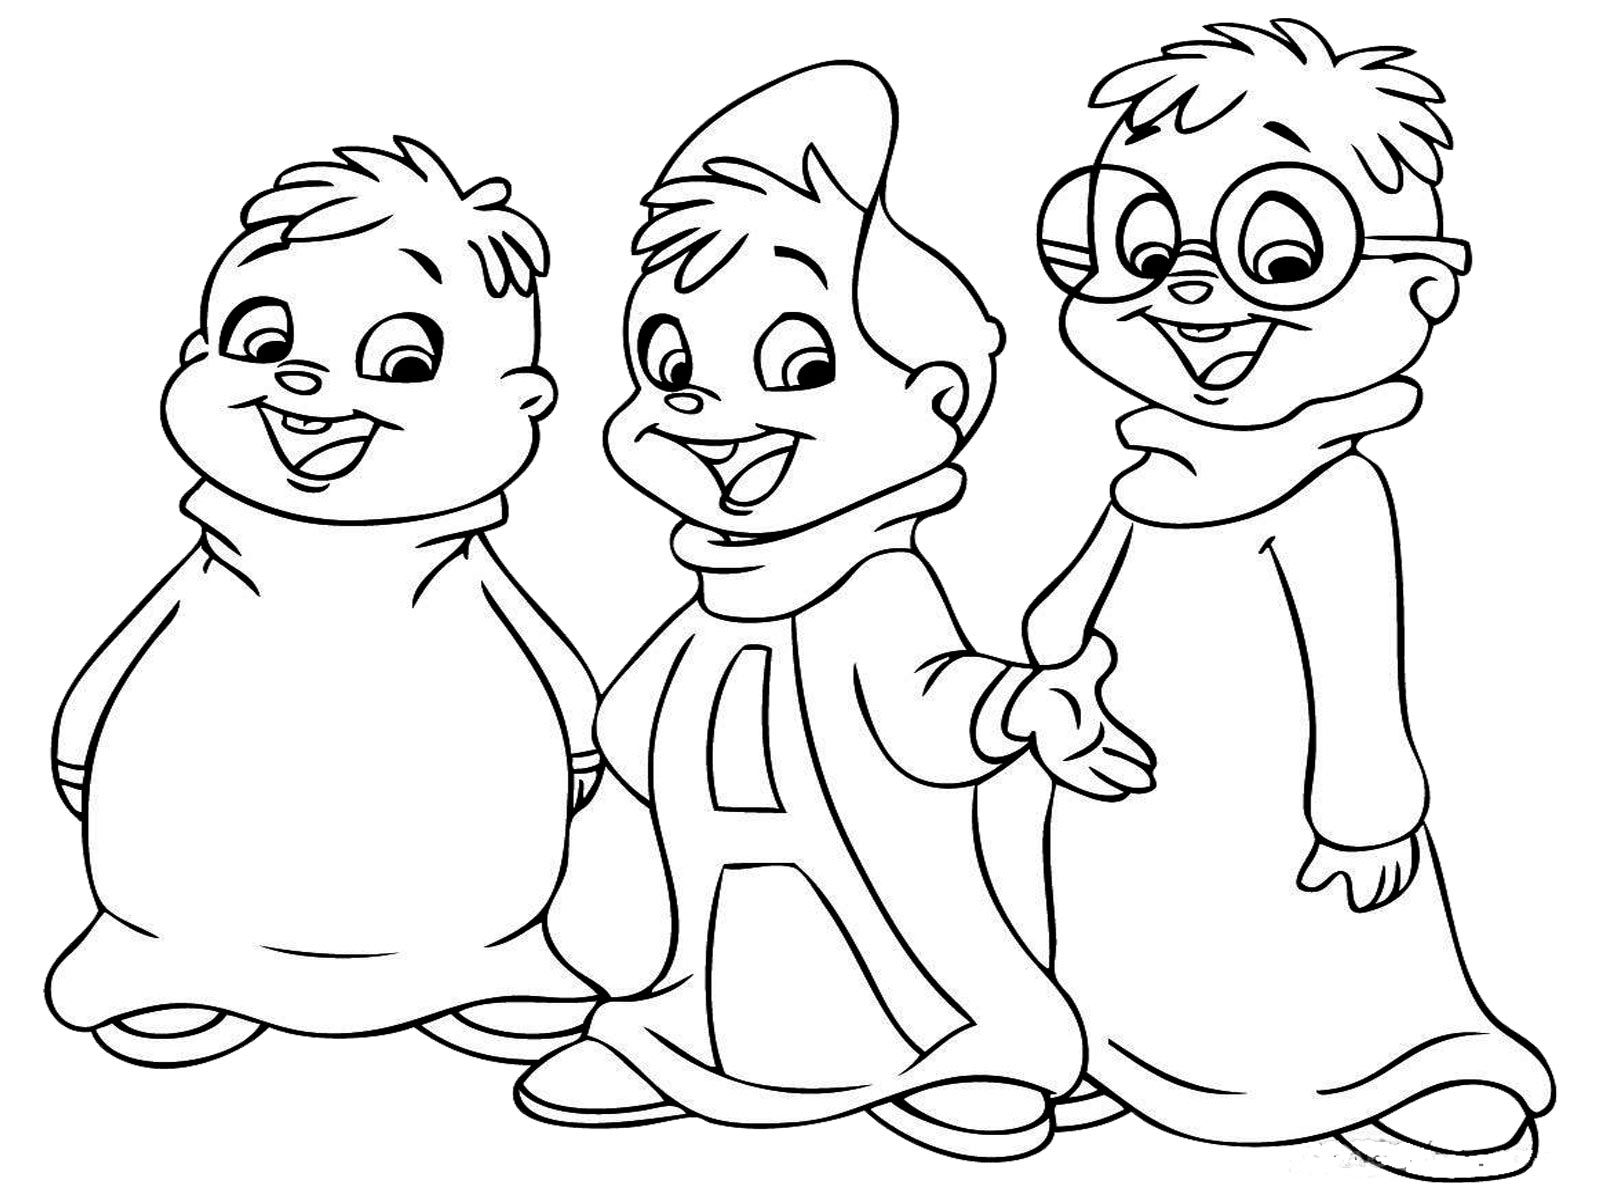 Printable coloring books - Printable Coloring Pages For Boys Alvin And The Chipmunks Coloring Pages Realistic Coloring Pages